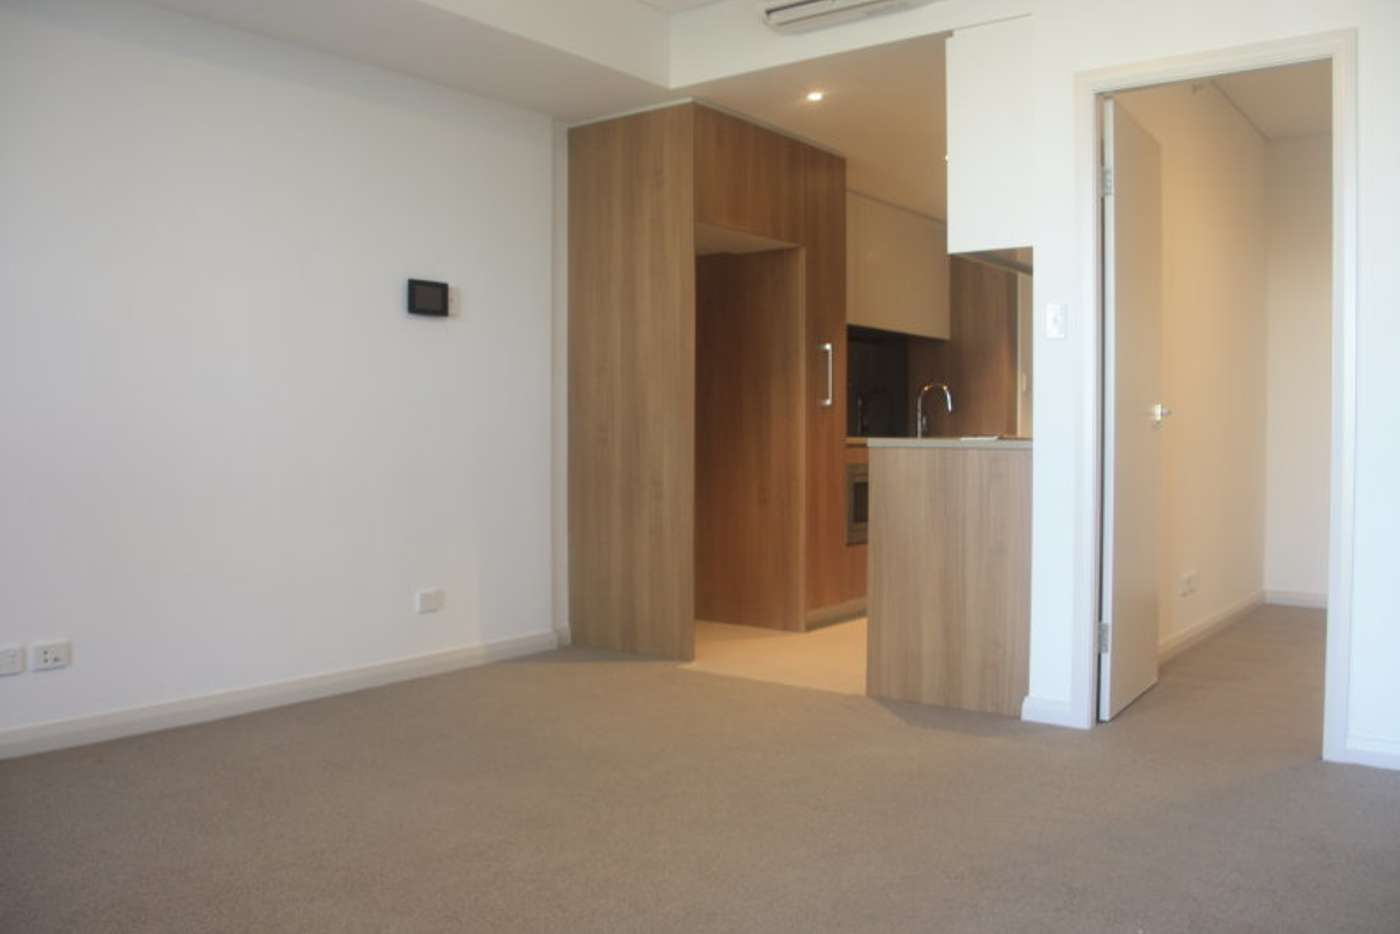 Main view of Homely apartment listing, 1105/10 Burroway Road, Wentworth Point NSW 2127